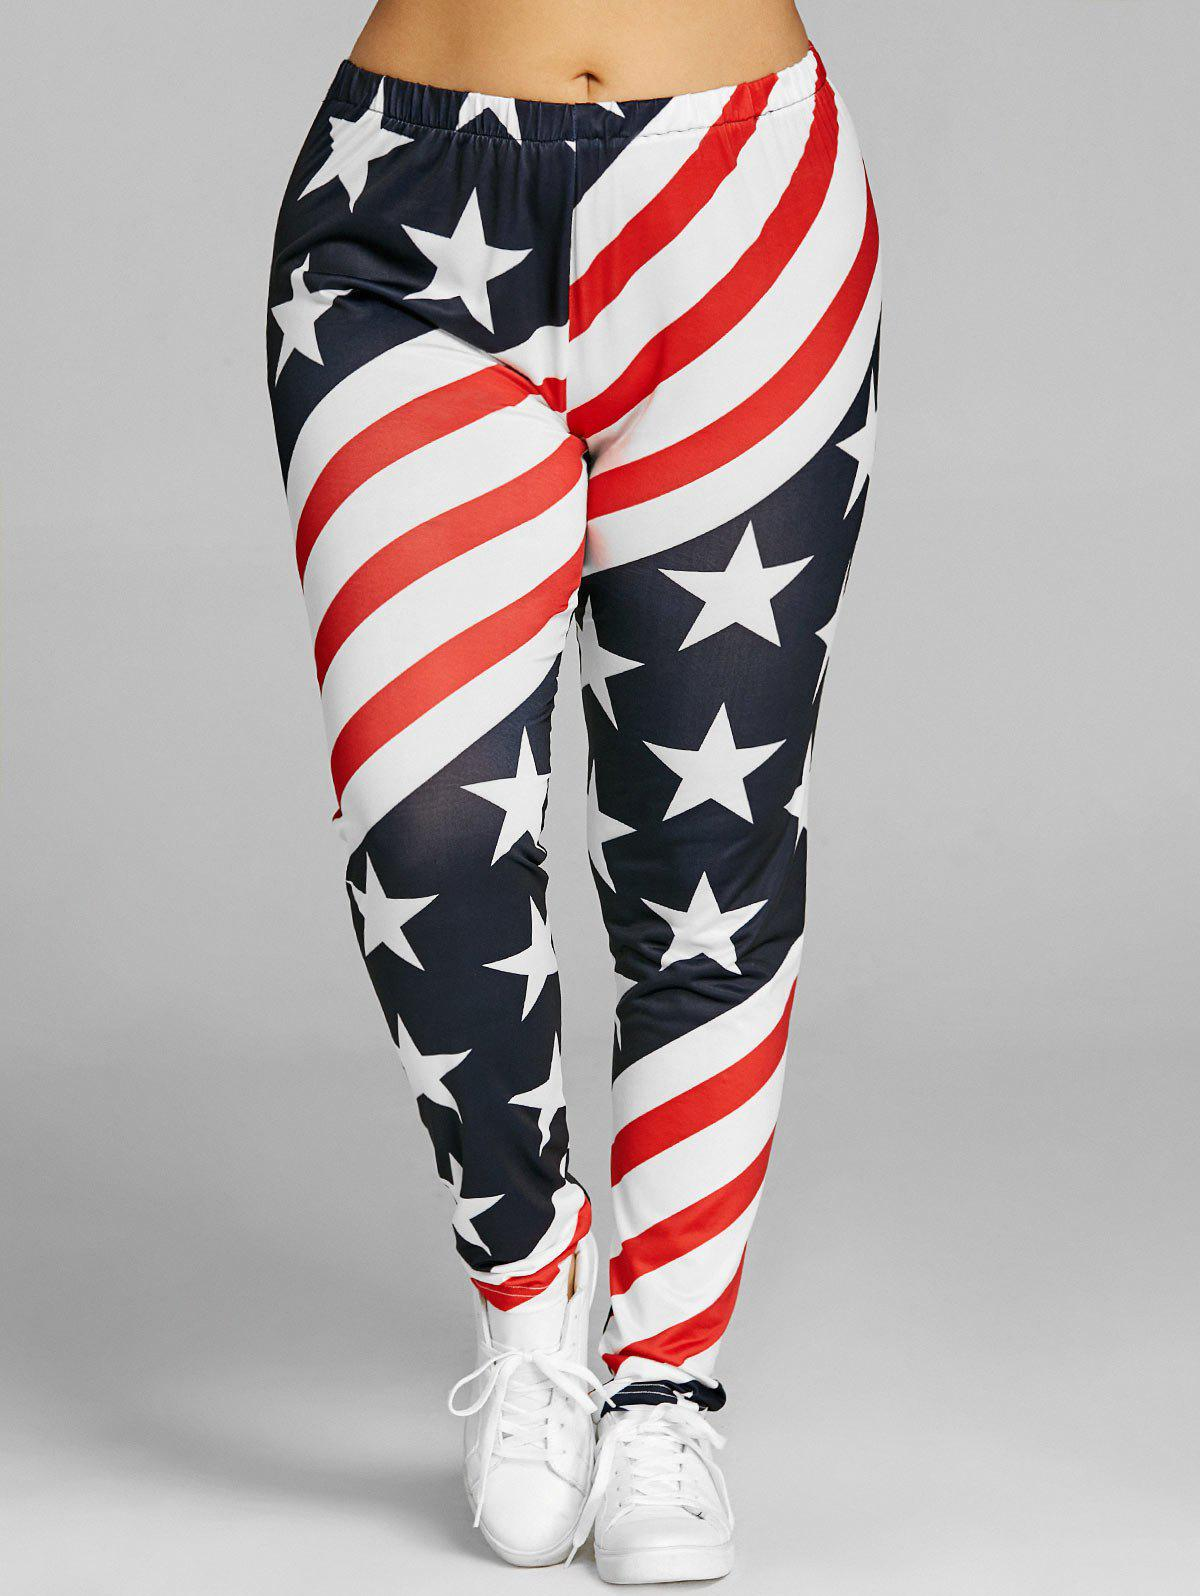 Patriotic Striped Star Print Plus Size Leggings - US FLAG 4XL